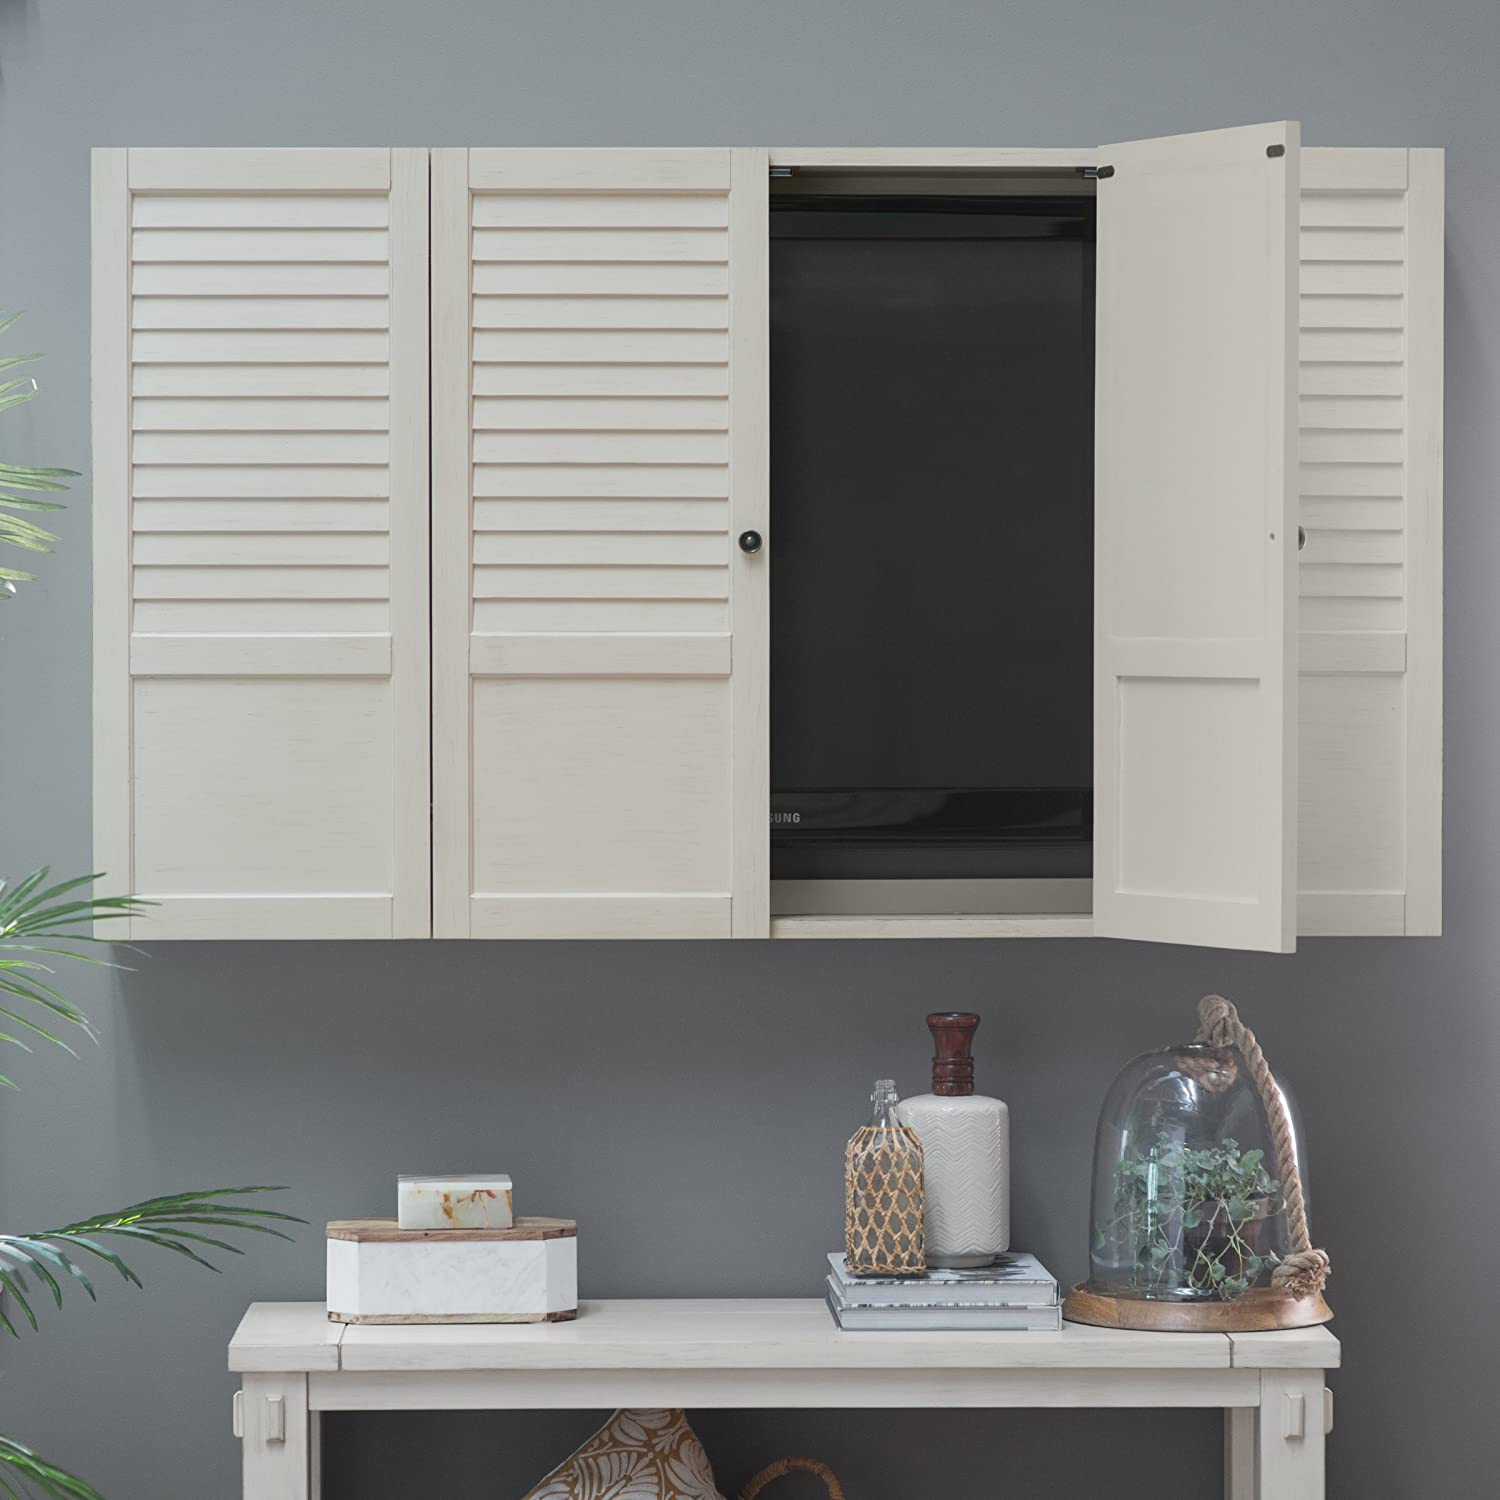 Nantucket Shutter Front TV Wall Cabinet - White Belham Living.